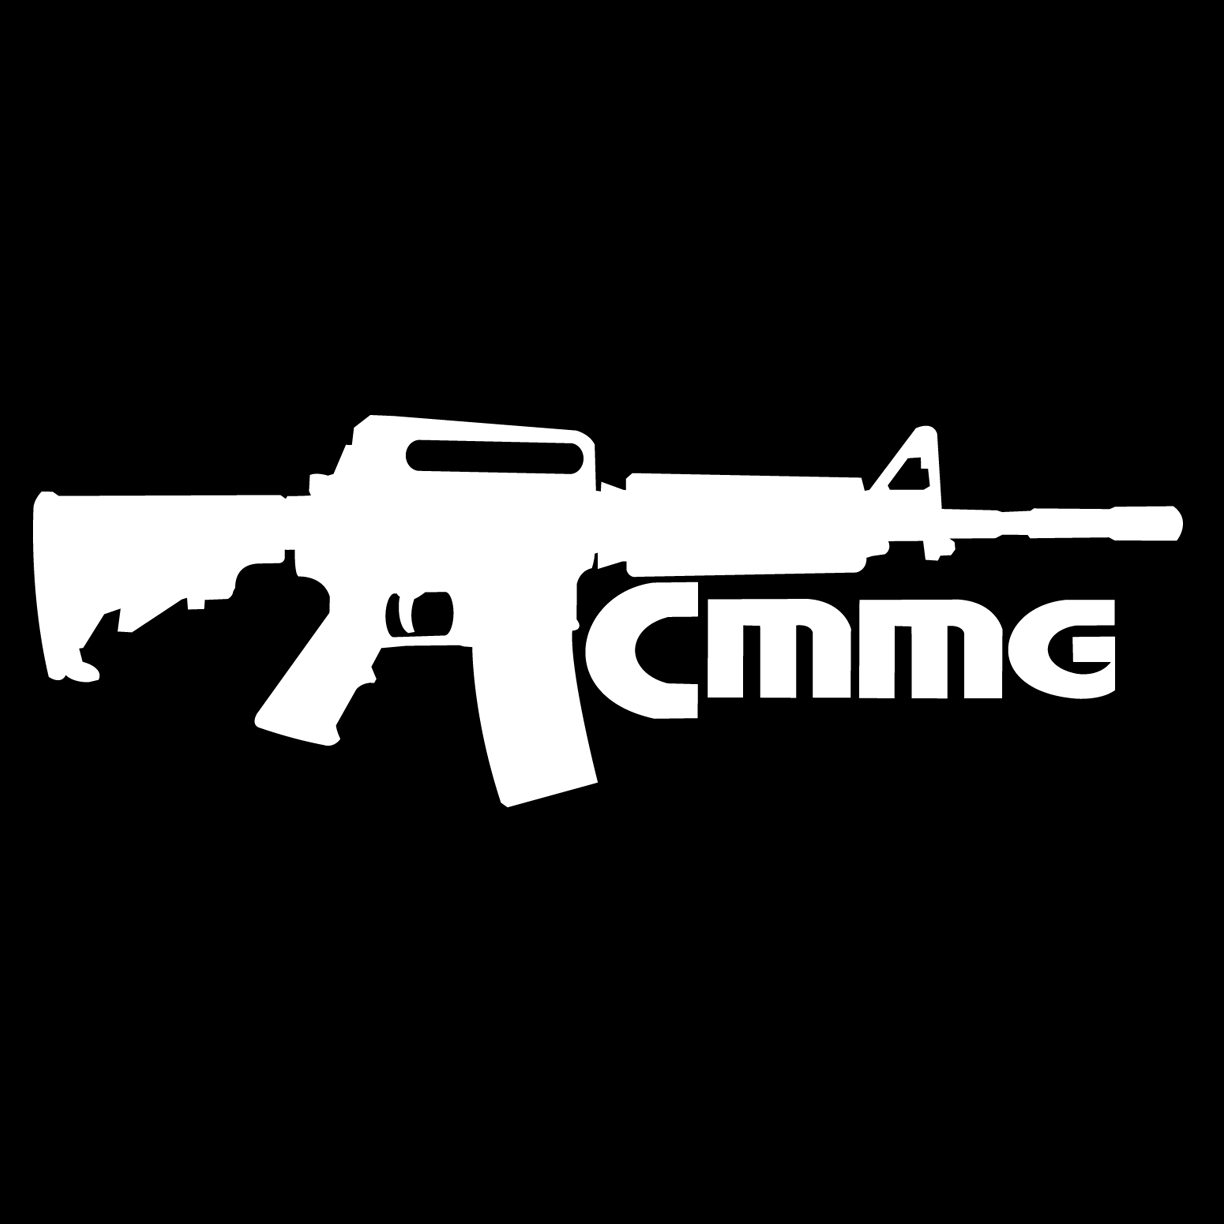 cmmg.png